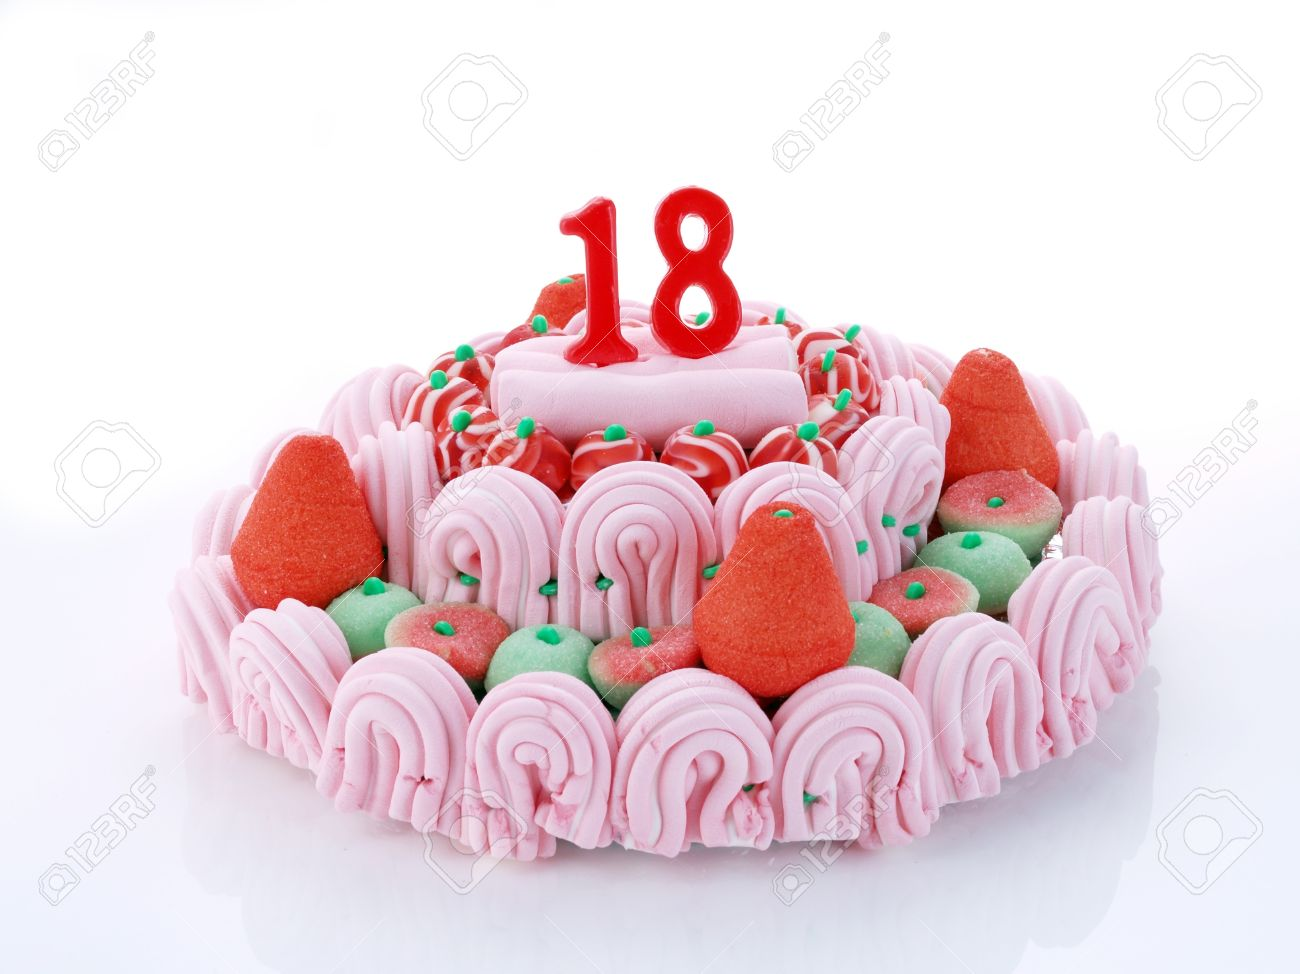 Birthday Cake With Red Candles Showing Nr 18 Stock Photo